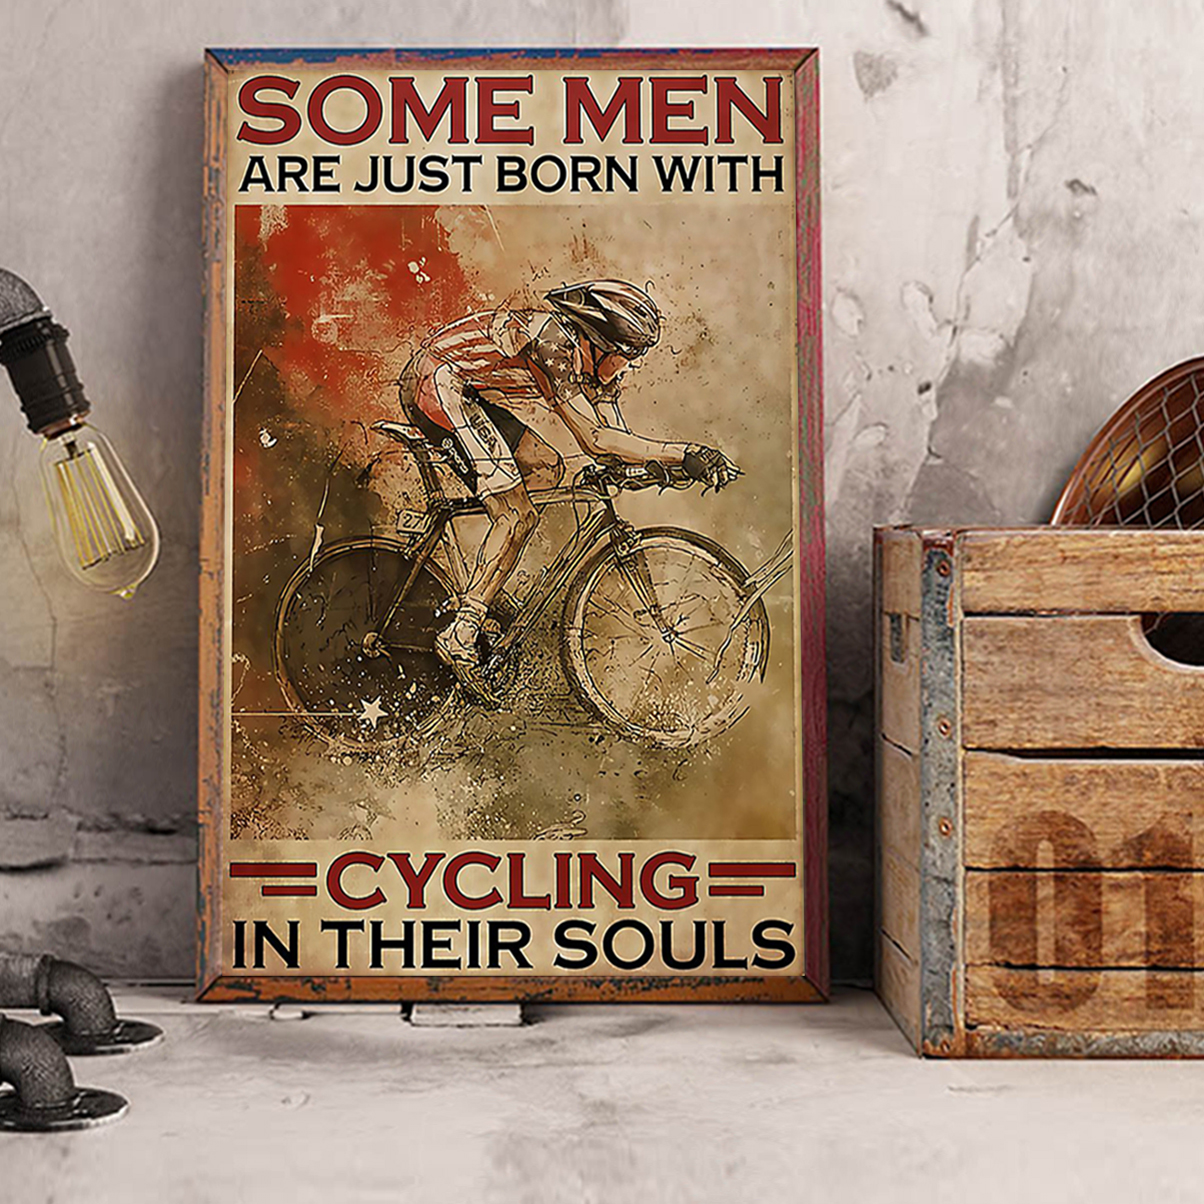 Some men are just born with cycling in their souls poster A2